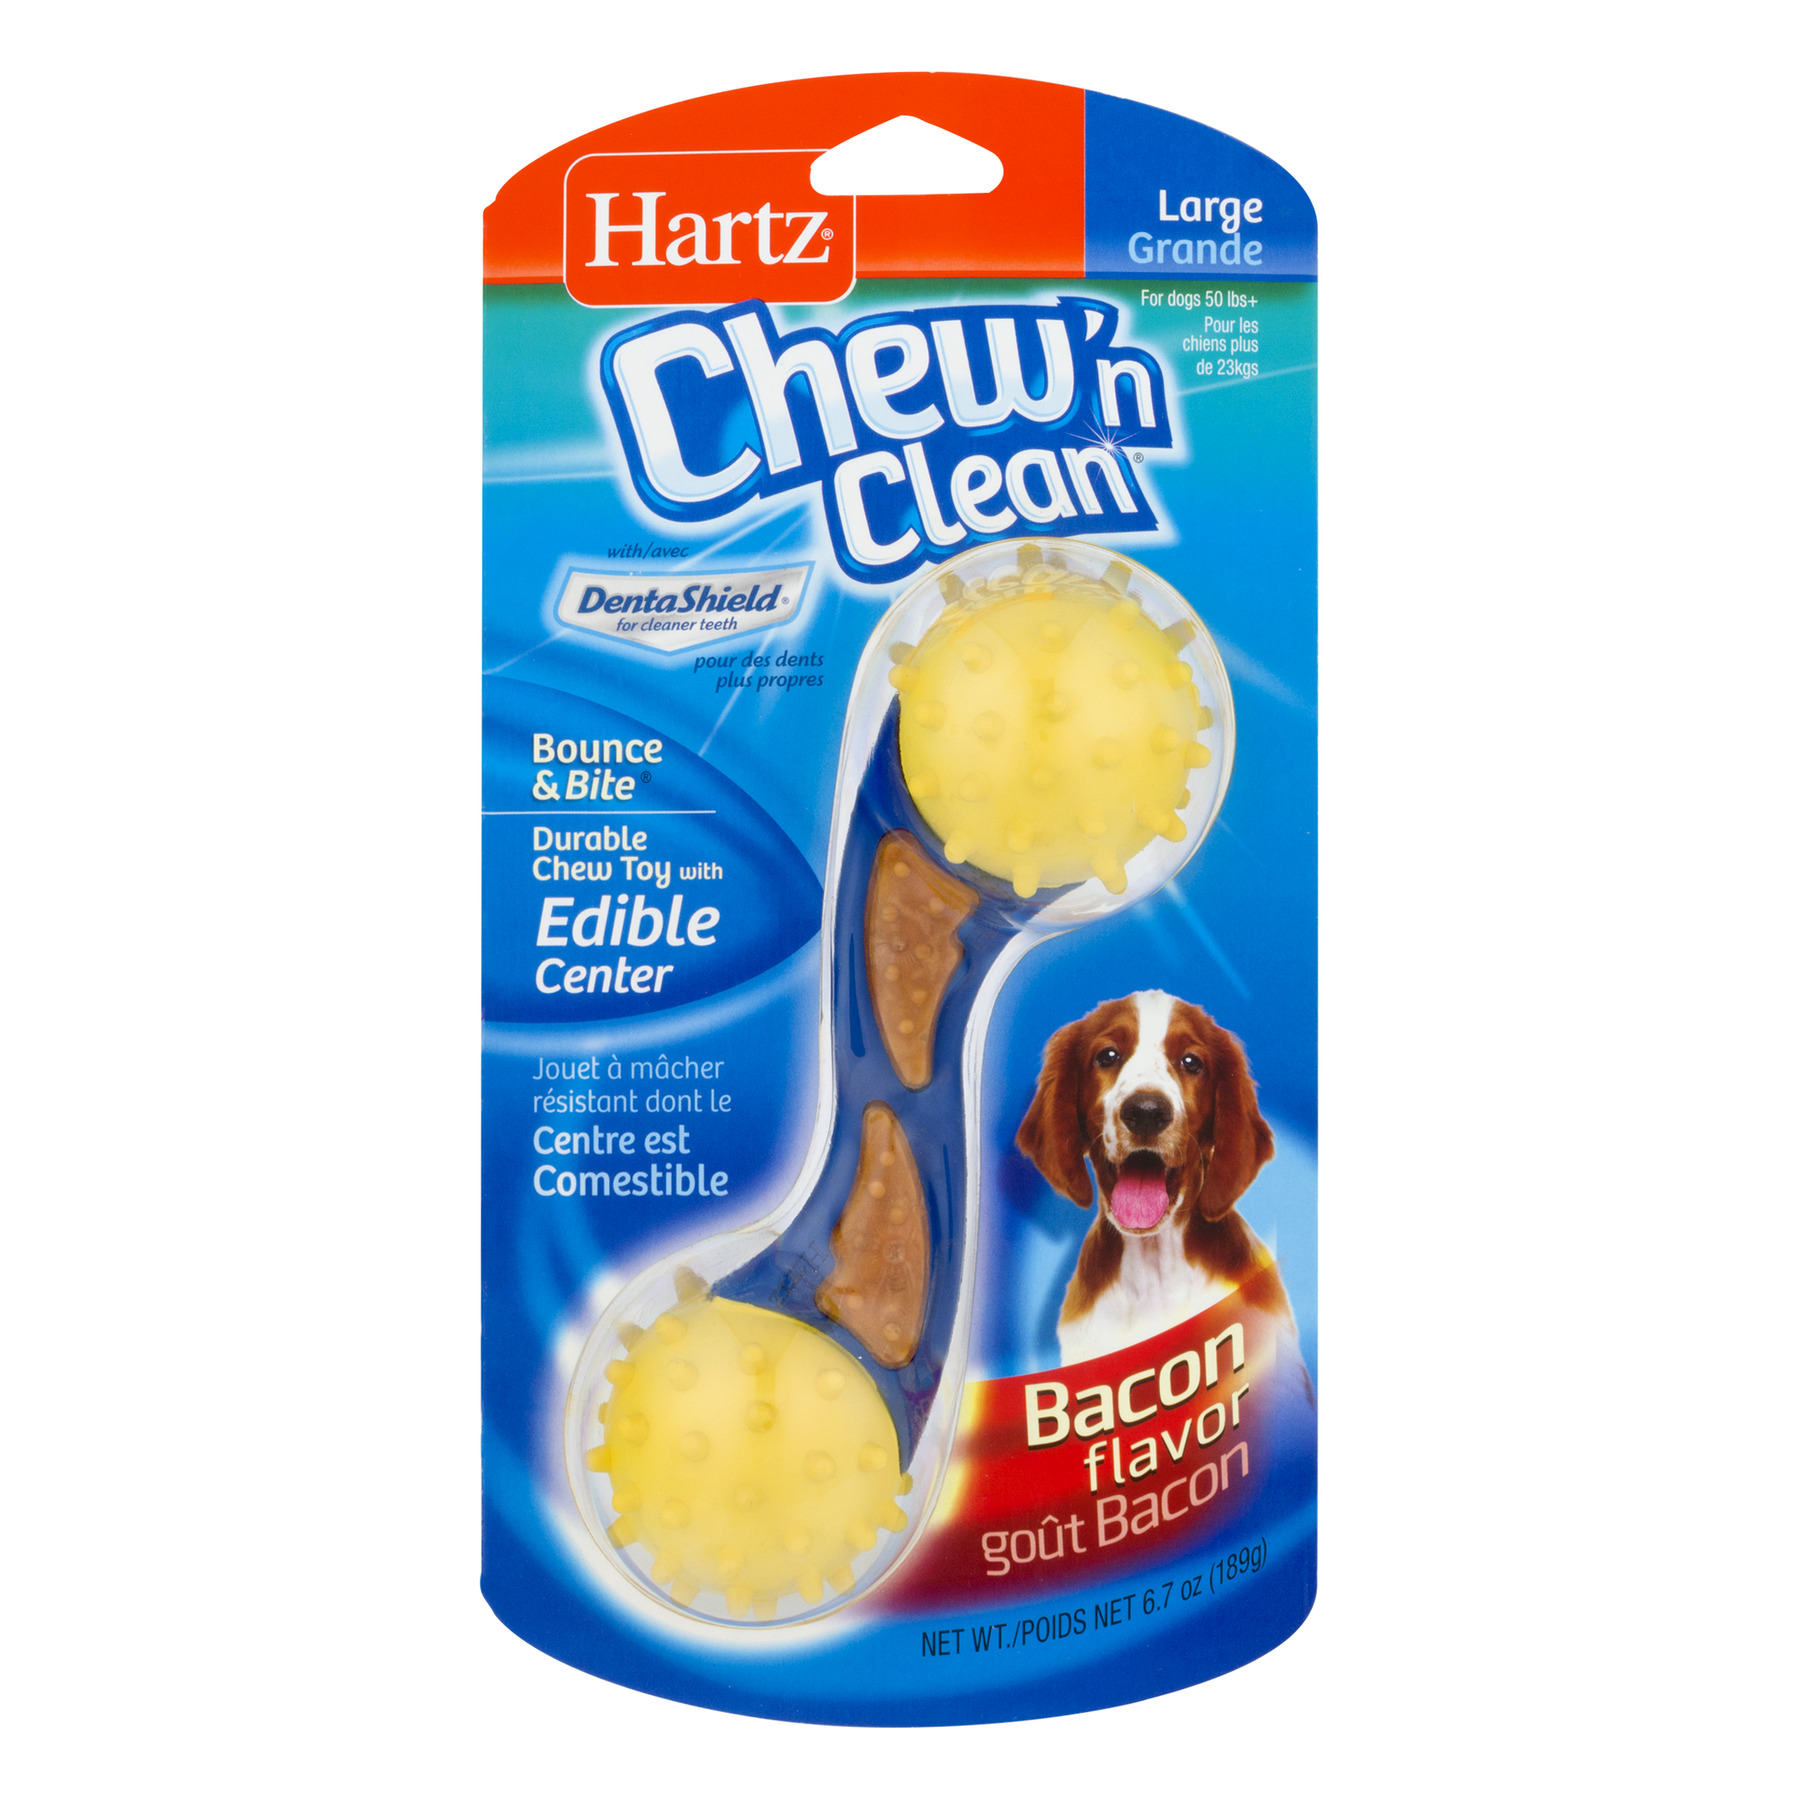 Hartz Chew 'n Clean Chew Toy, Bacon, Large